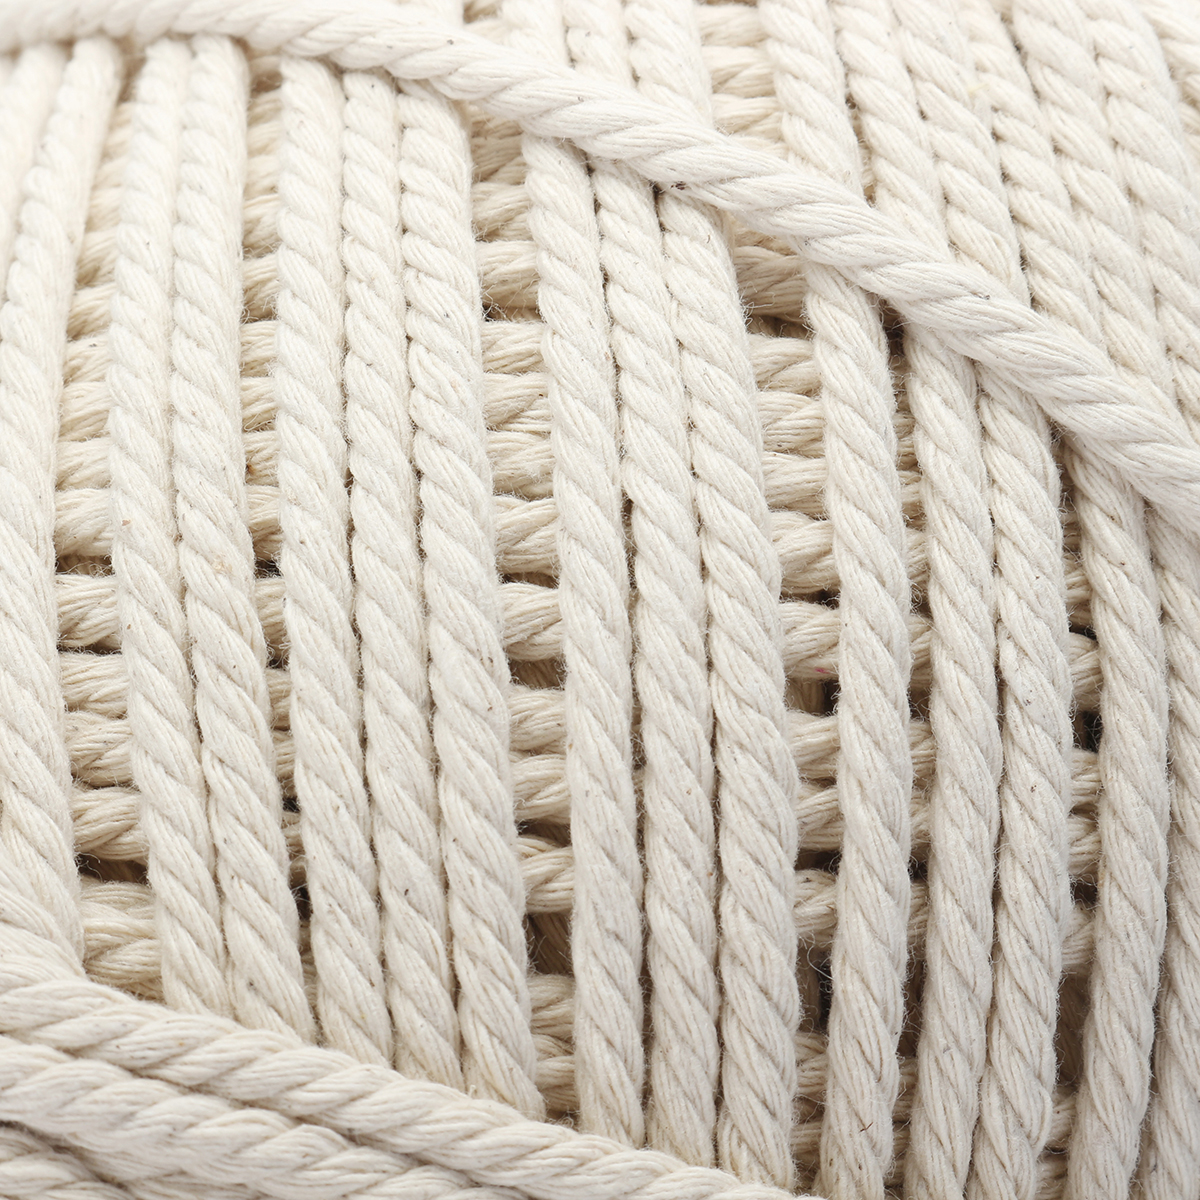 900M 4 Strands Braided Cotton Rope 5mm Twisted Cord Craft Rope Multifunctional Tools